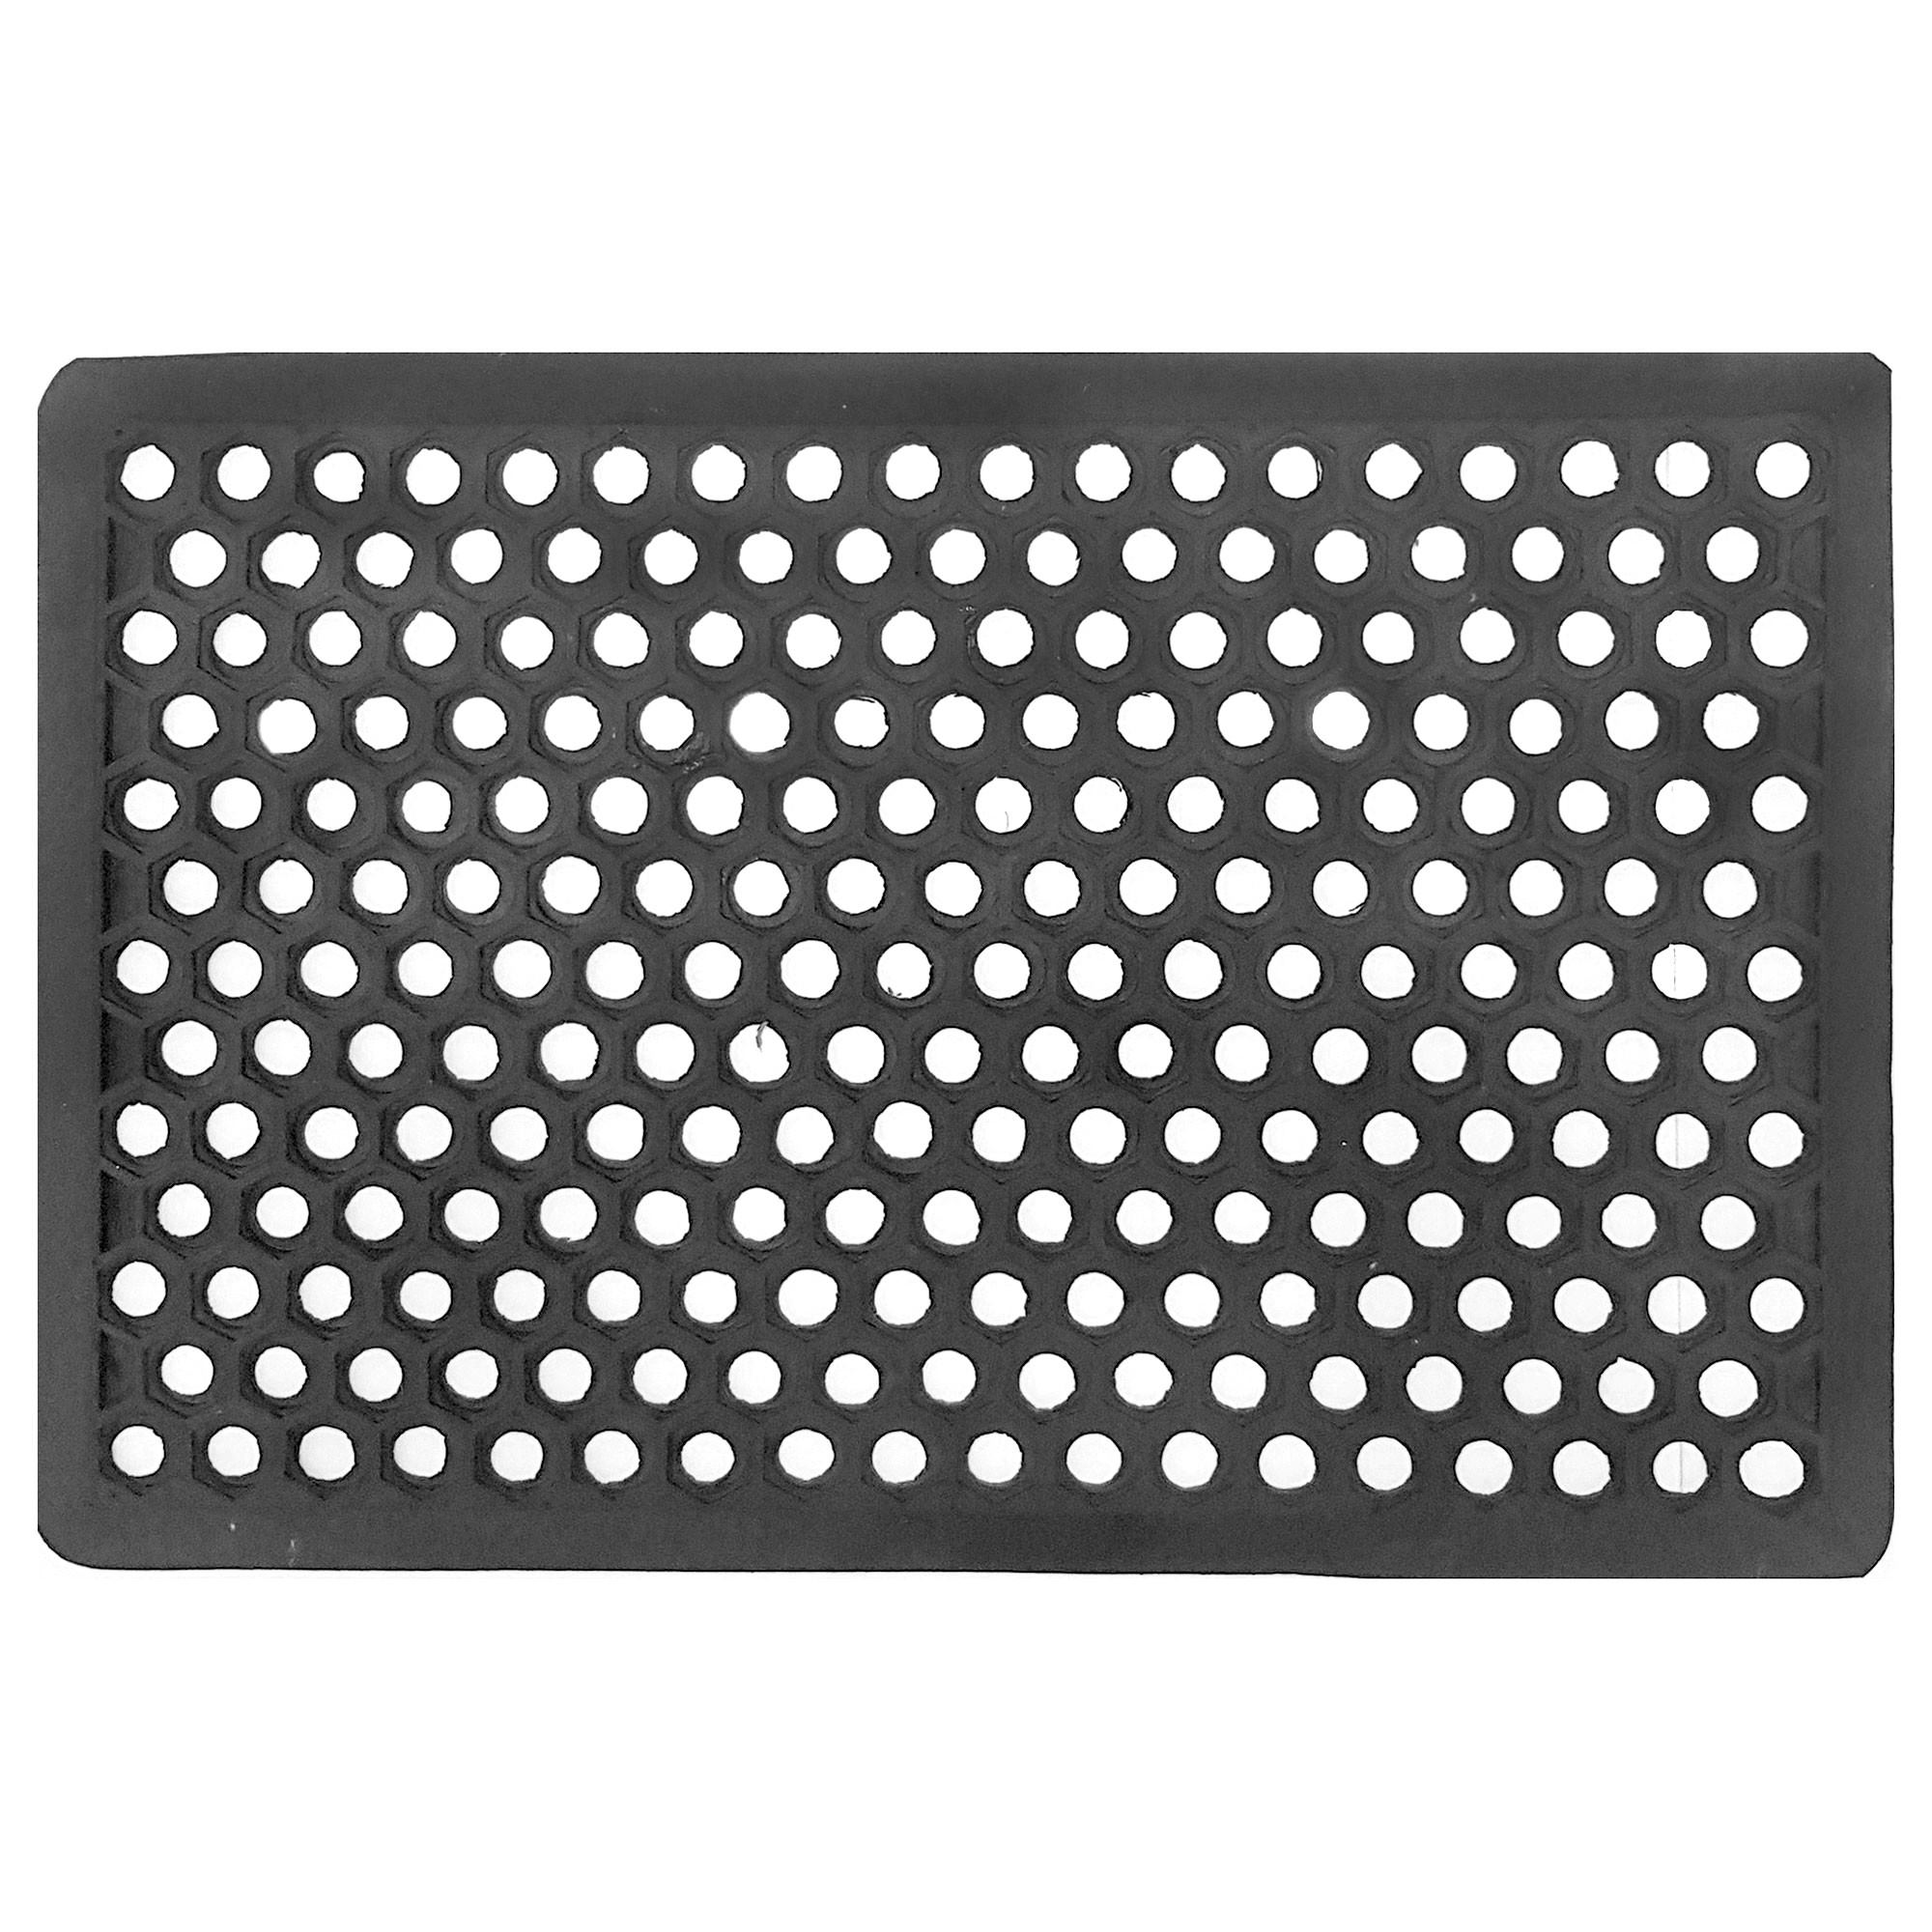 Honeycomb Hollow Rubber Doormat, 70x40cm